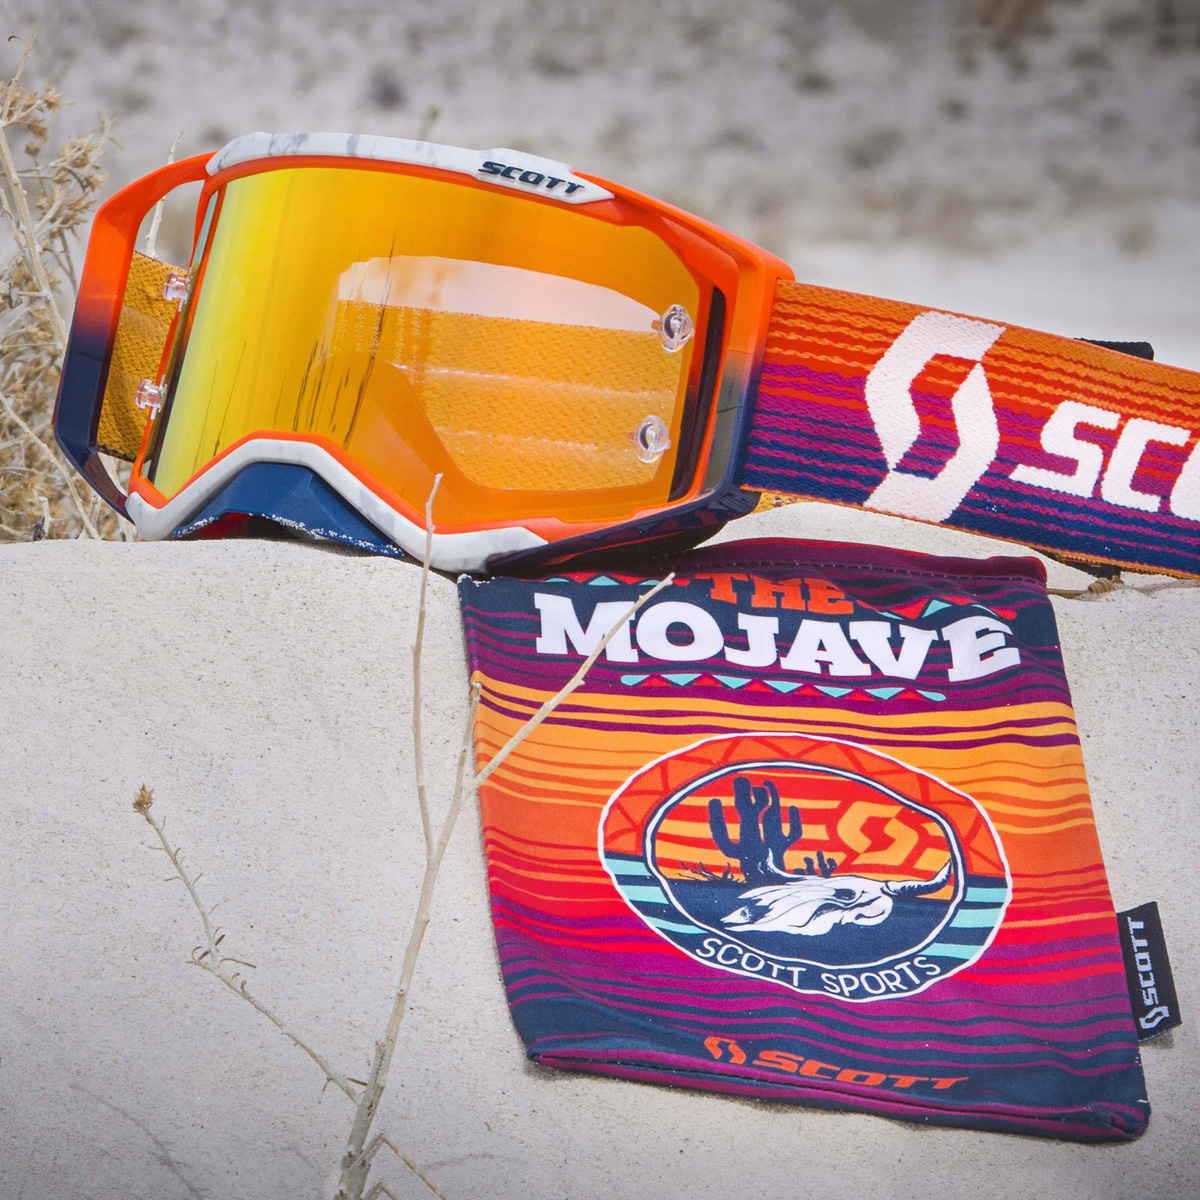 268887-1415280 Scott 2019 Prospect Mojave Special Edition Orange Motocross Enduro bmx downhill Goggle  brille crossbril lunette